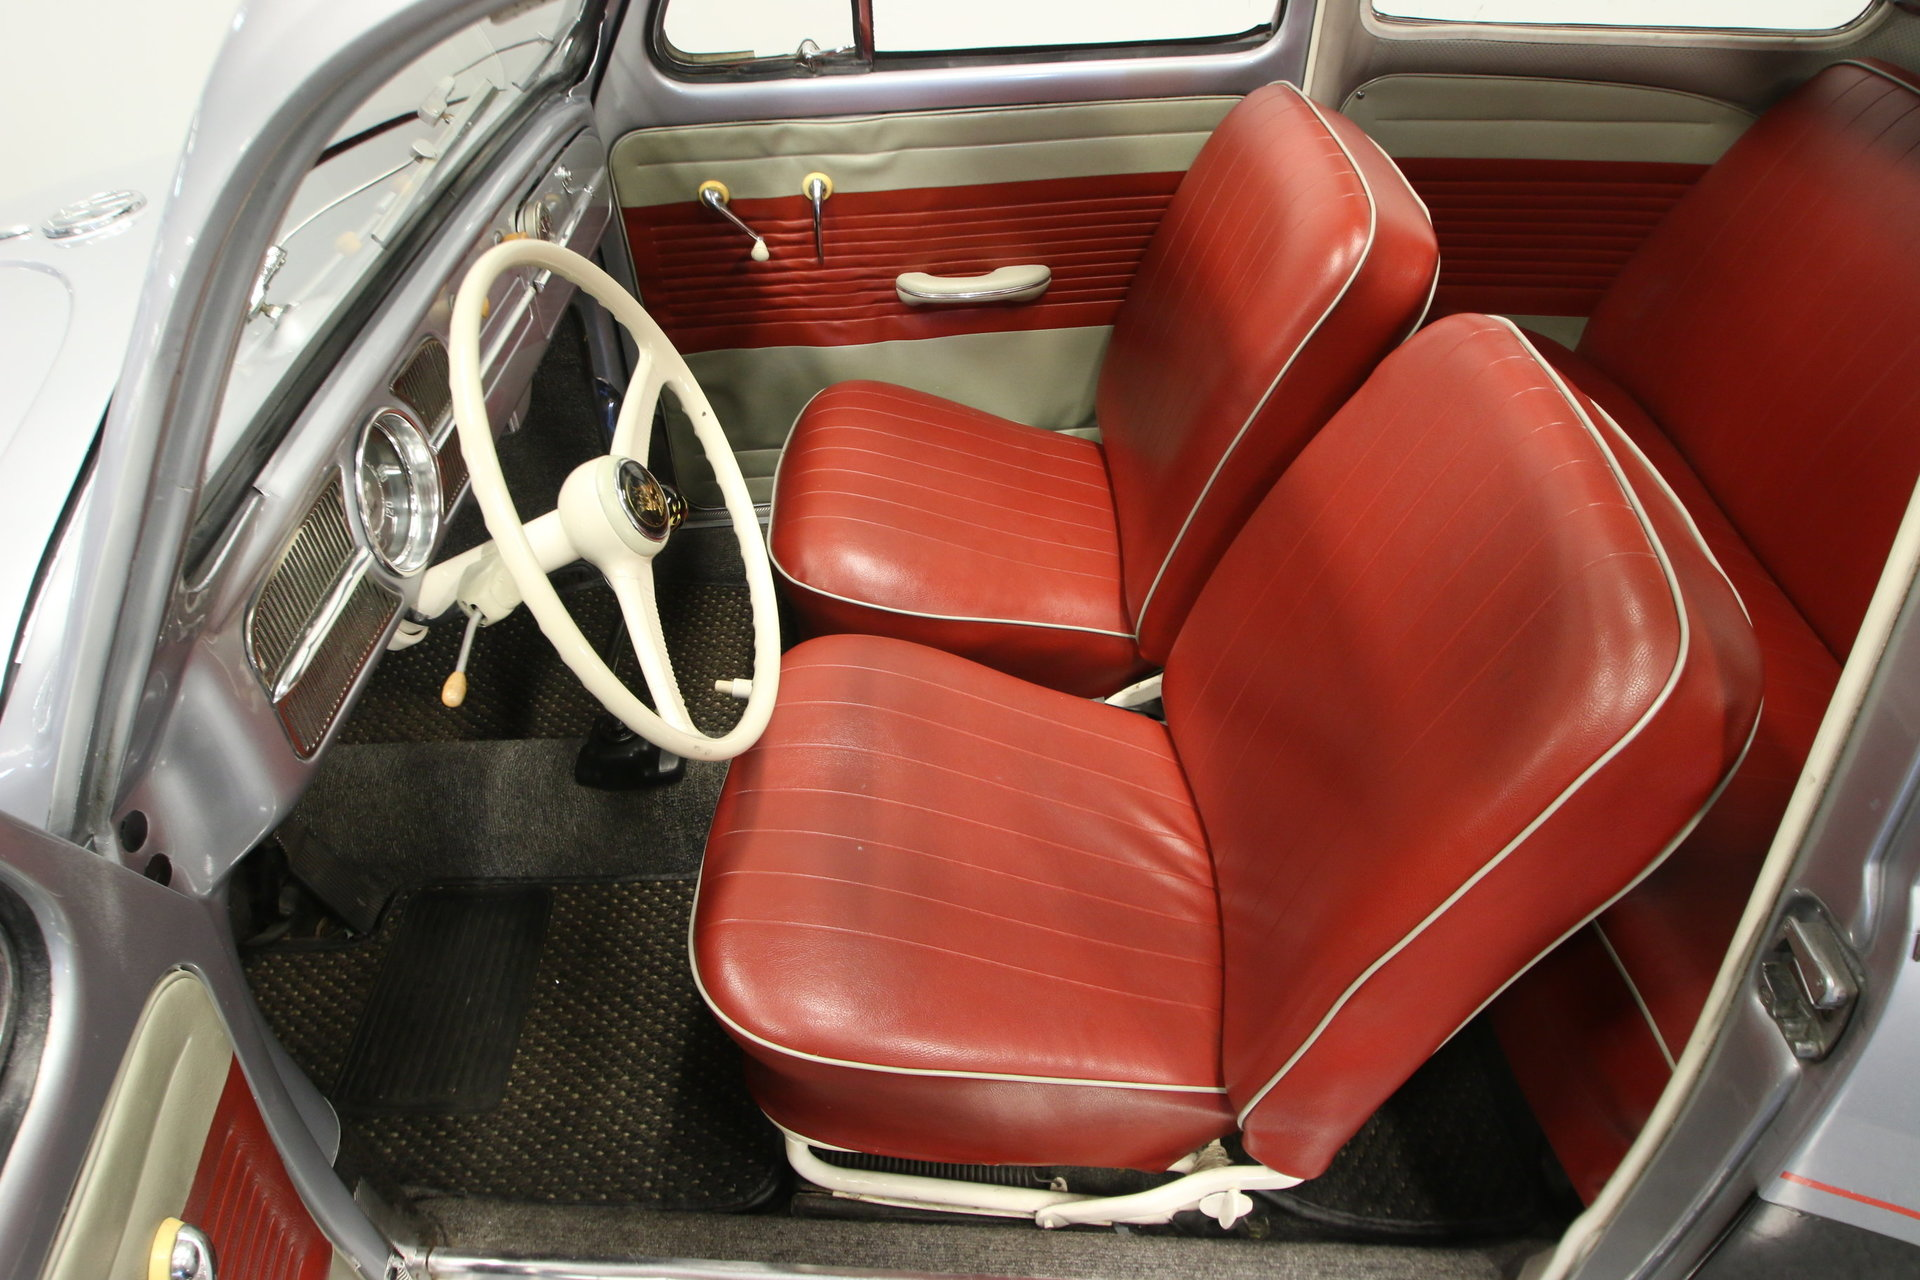 1960 Vw Beetle Seats Volkswagen Car Interior Driving Impression Source Streetside Classics The Nation S Trusted